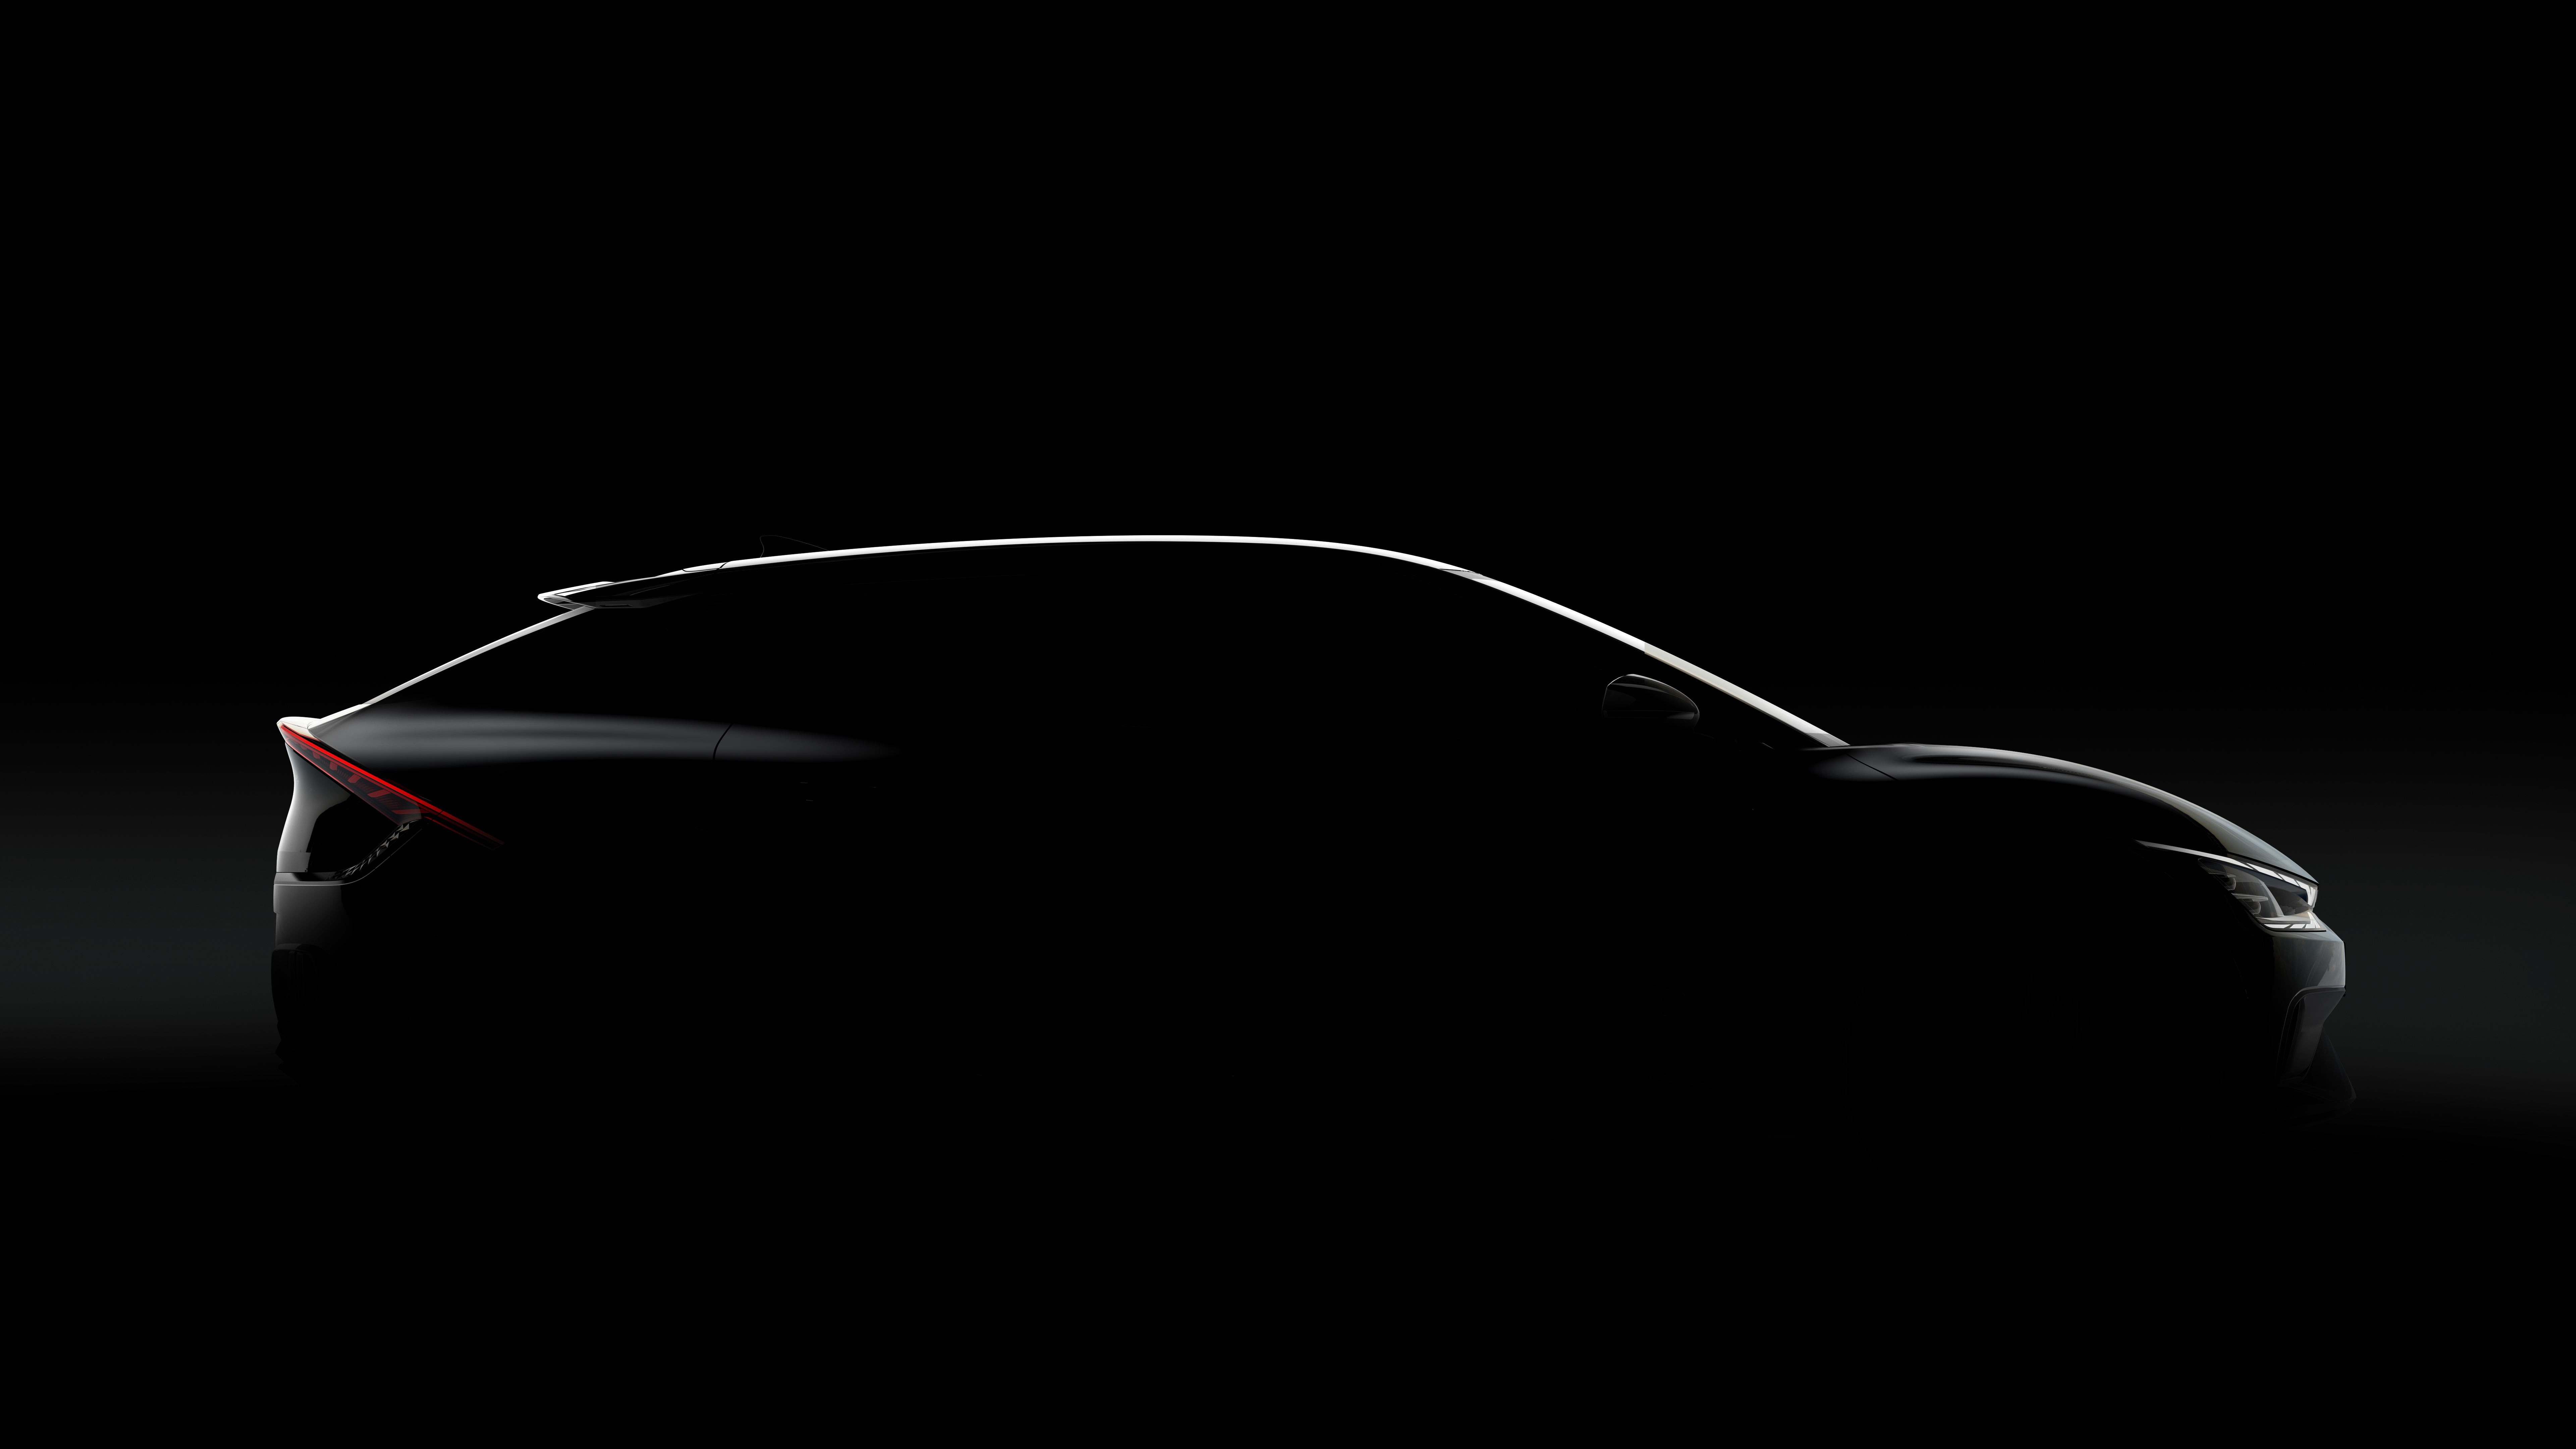 Kia teases images of new EV